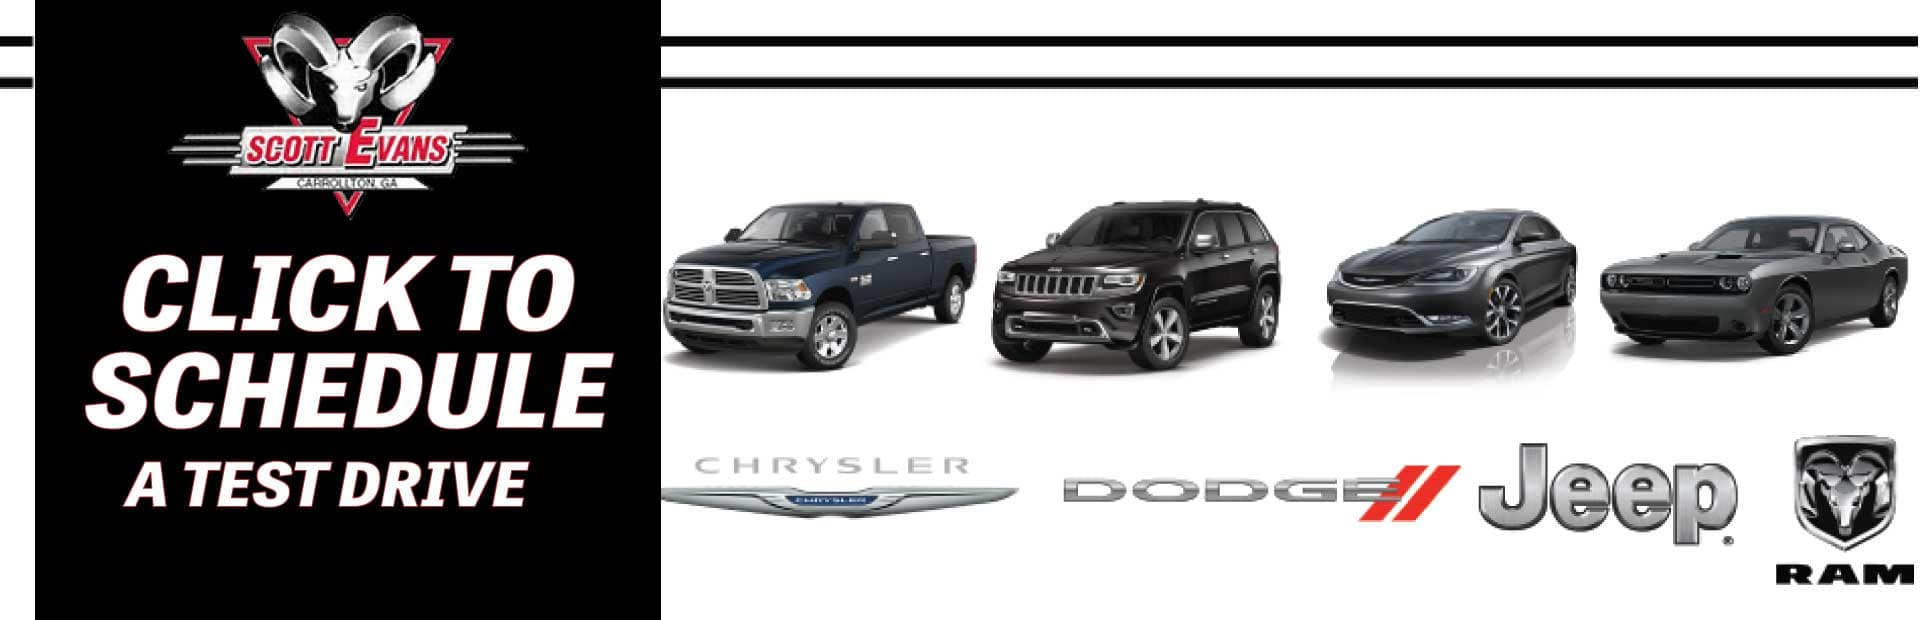 Click to Schedule a Test Drive Banner!